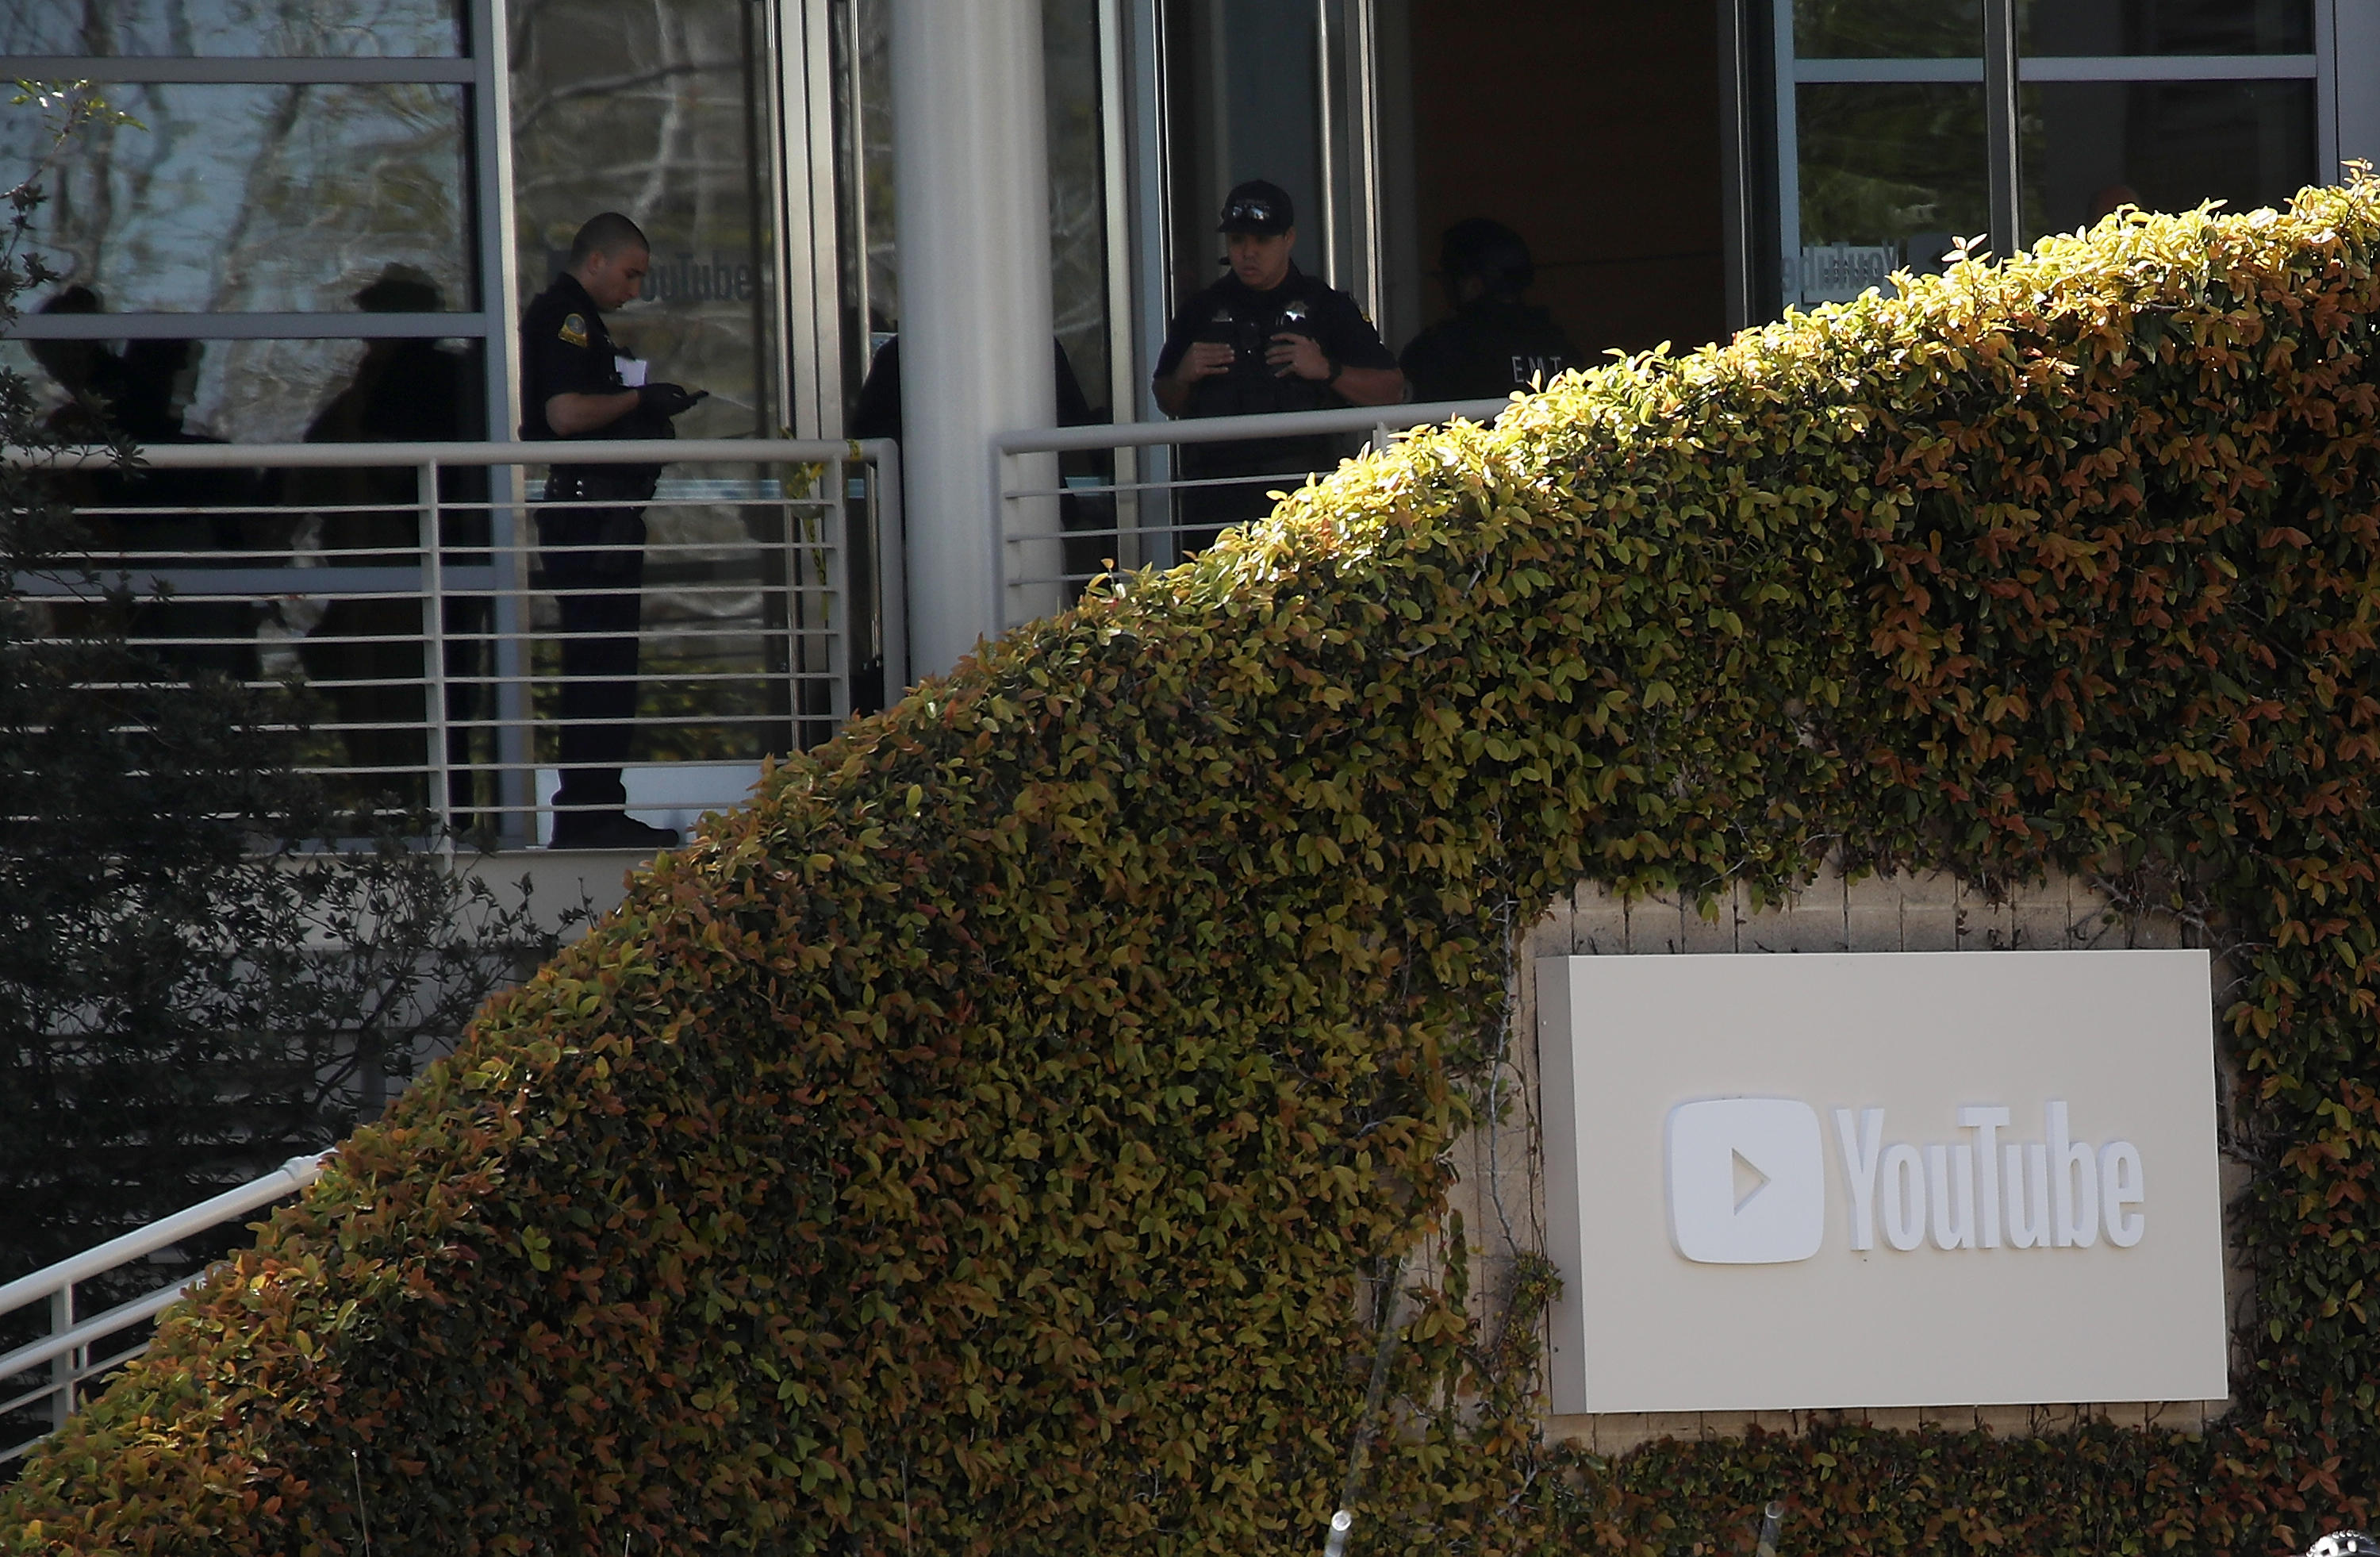 Police officers stand on a balcony behind a large bush that surrounds a YouTube sign